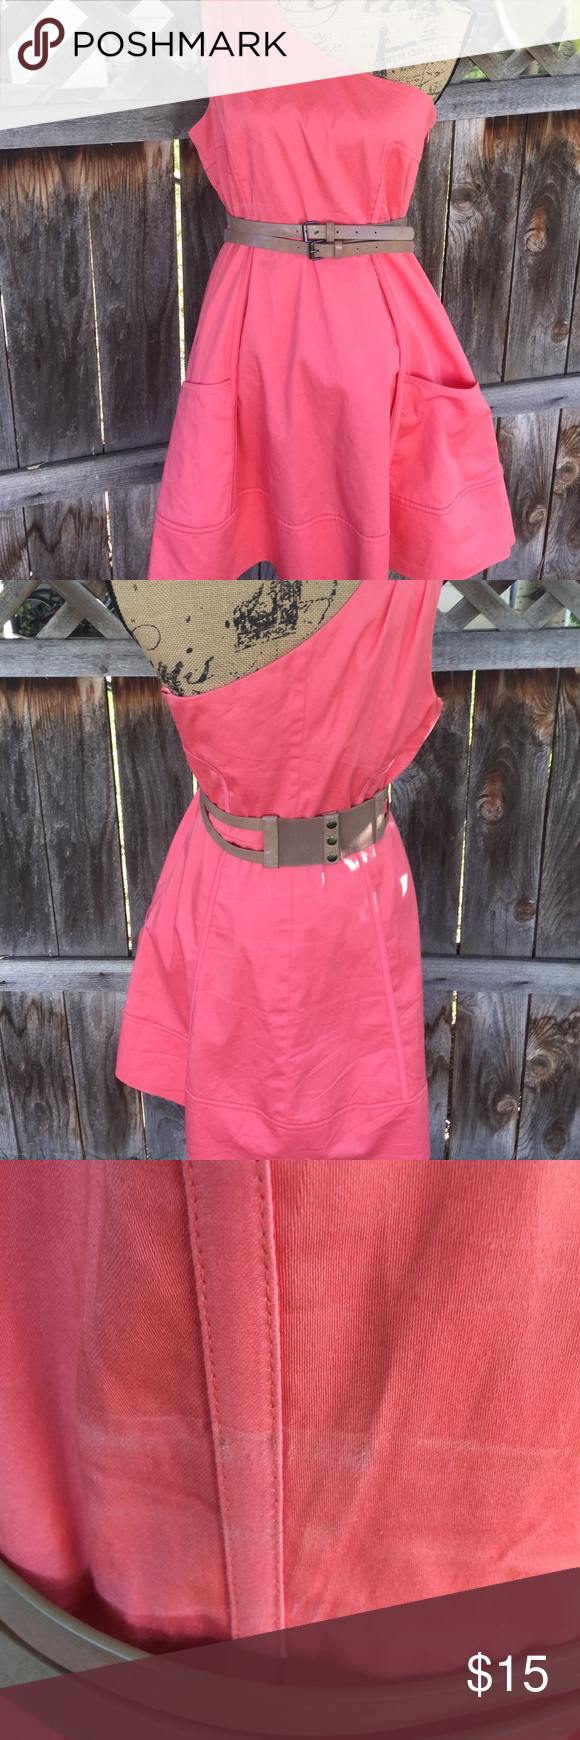 Jessica Simpson one shoulder dress soze 12 This is a cute dress has ...